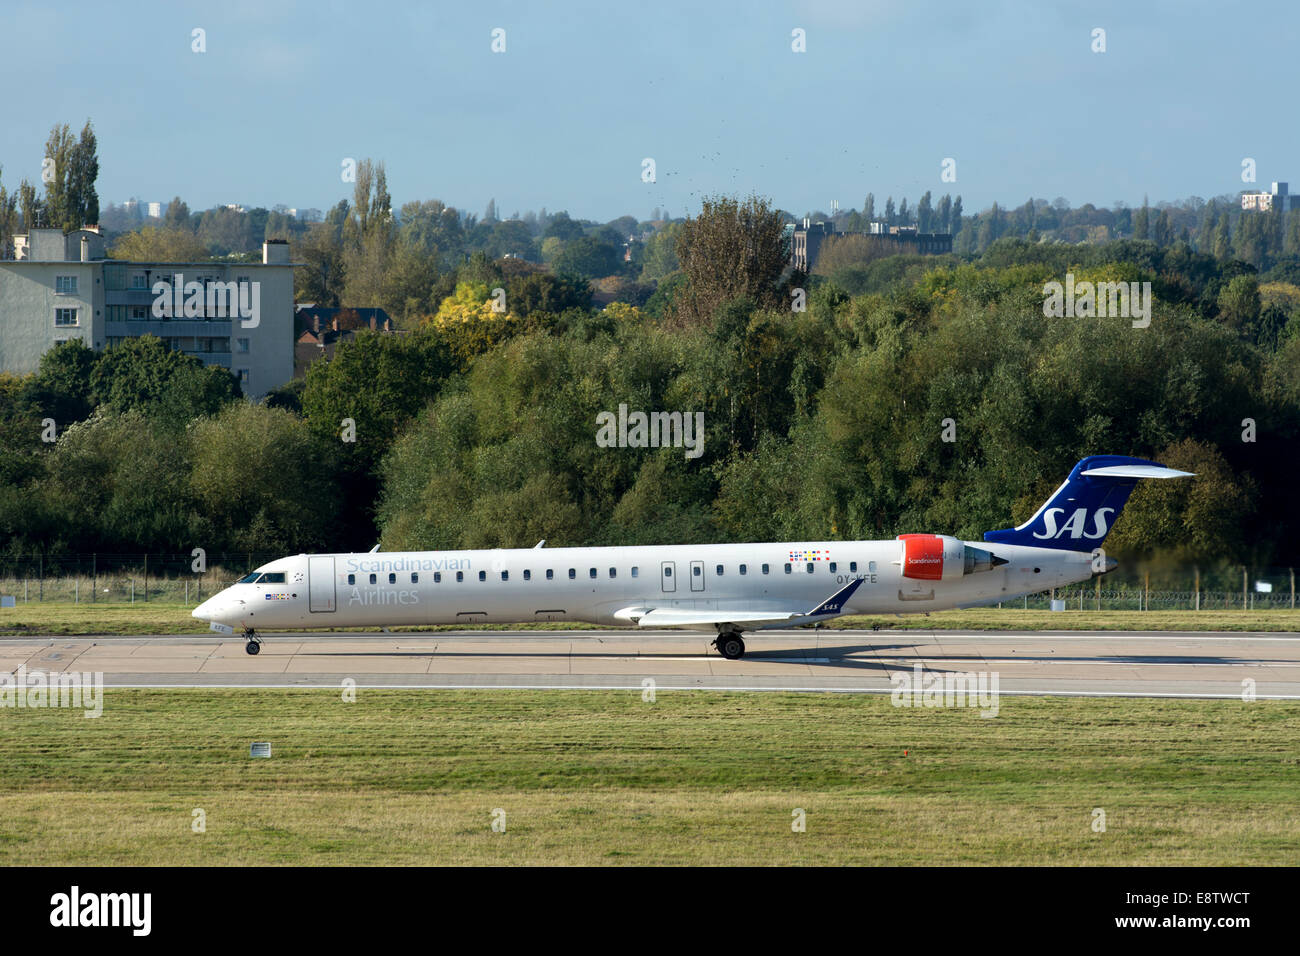 Canadair Aircraft Wiring Diagram Schematic Diagrams Theremindiagram Similiar Crj 900 Safety Record Keywords How A Jet Engine Works